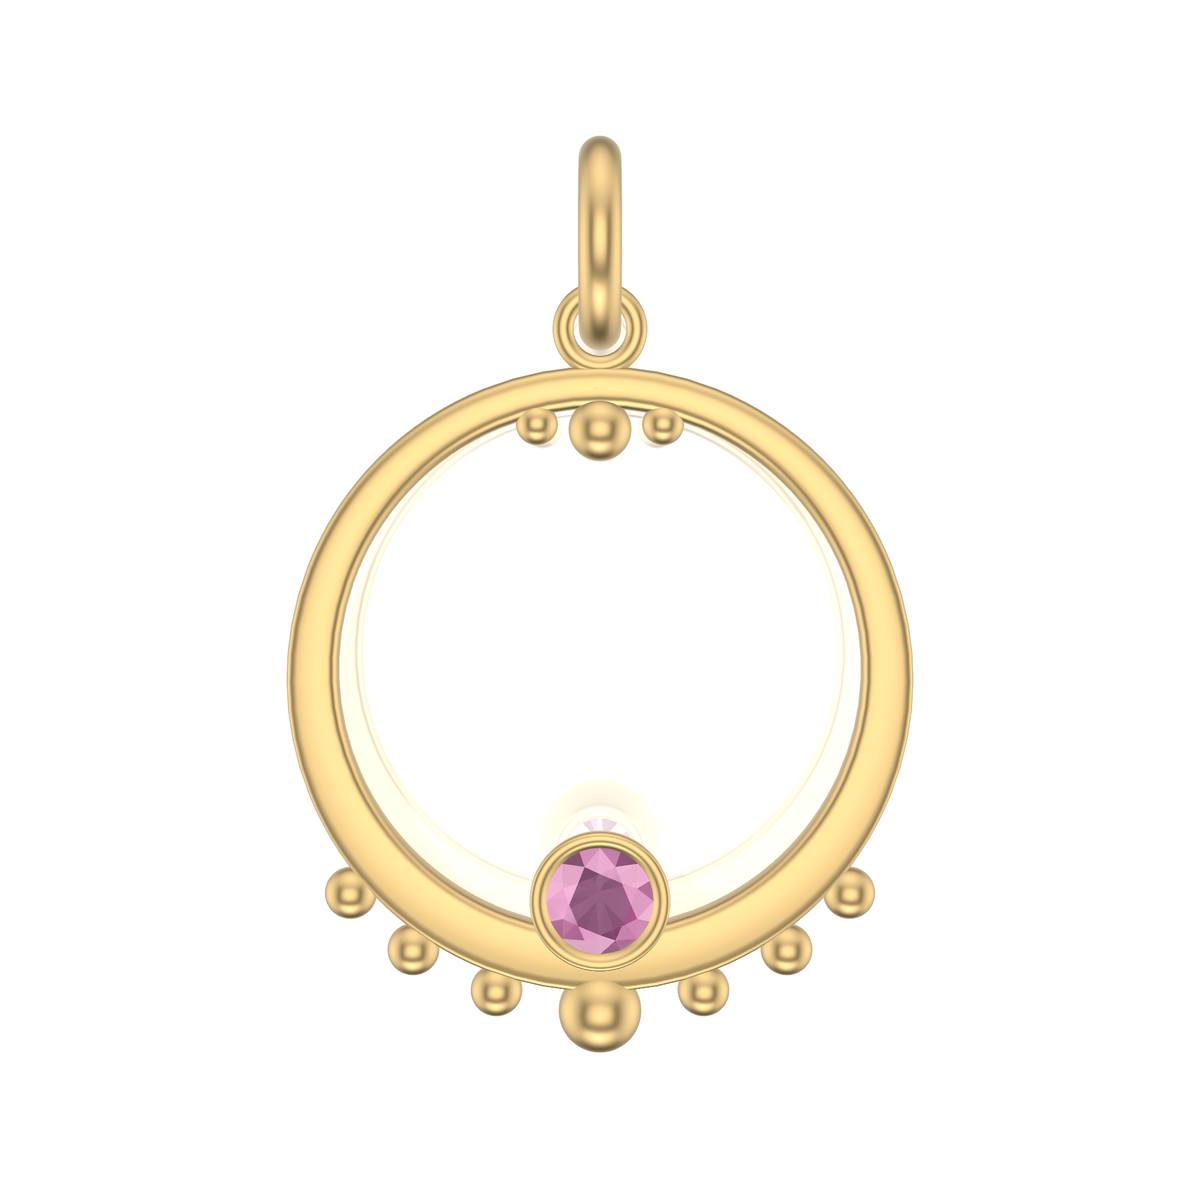 Mothers Circle Framed Charm | Gold Pendant With Granules, Large | Pink Or Purple Garnet Or Spinel